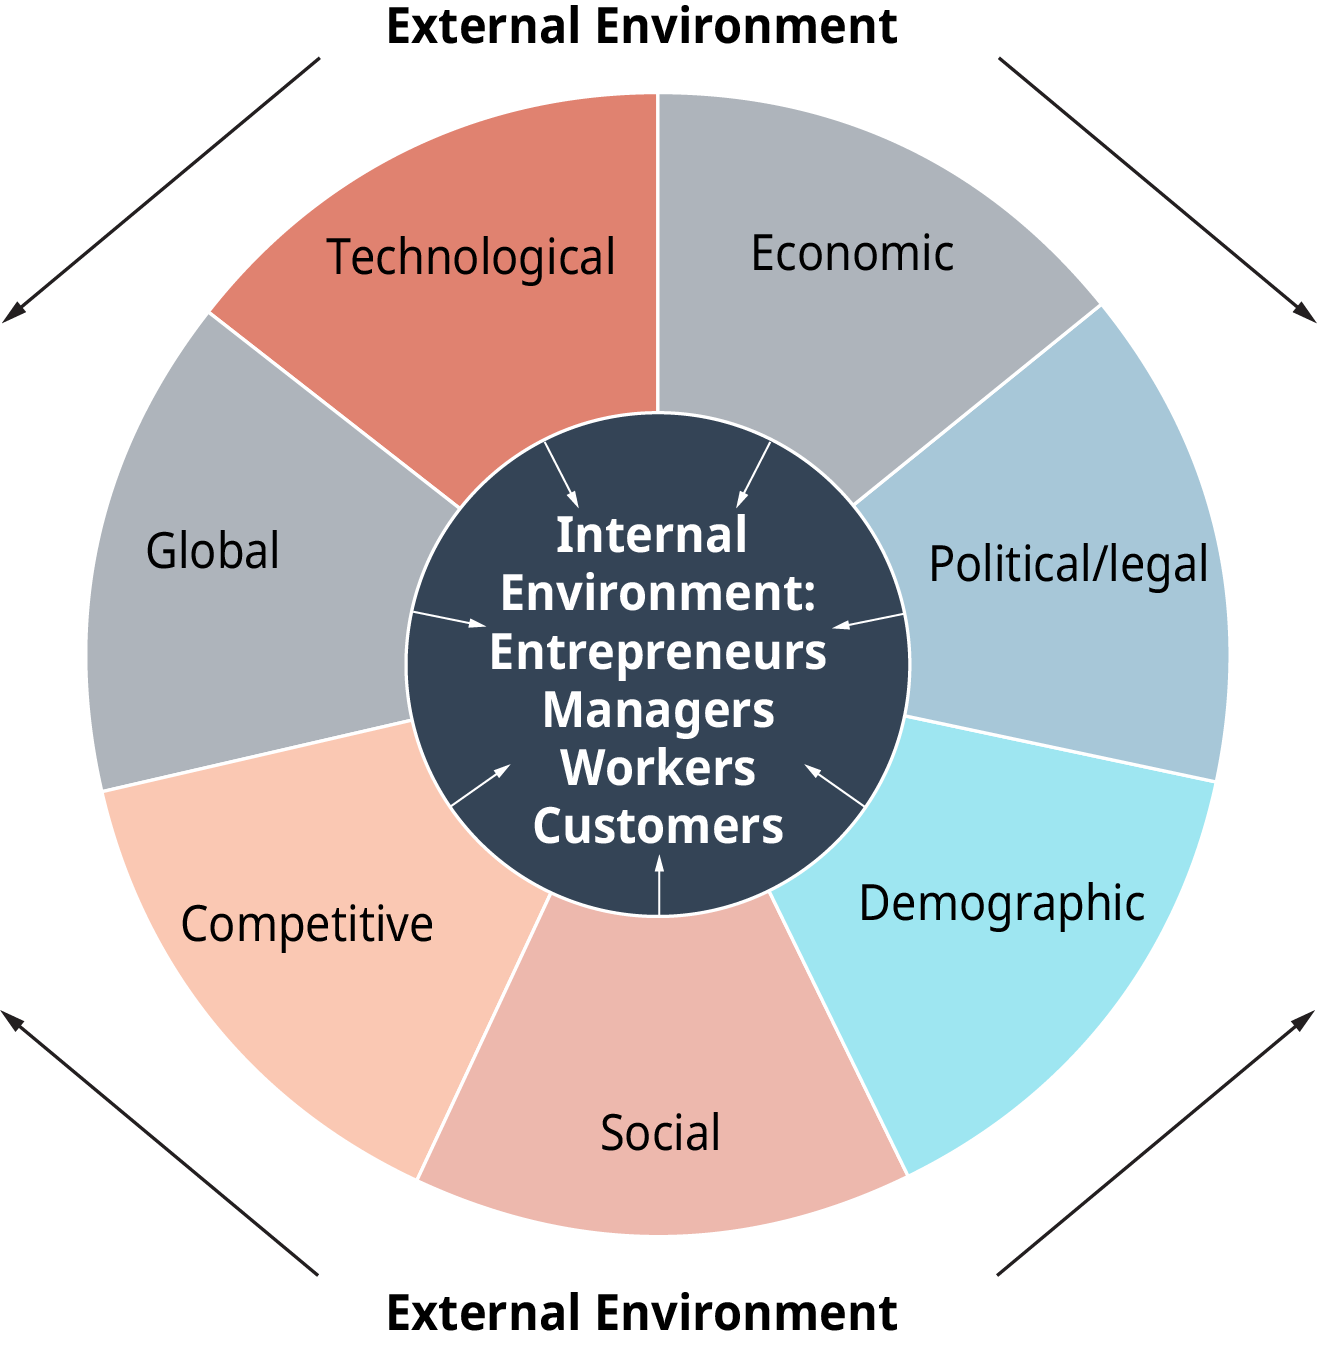 The diagram is a circle, with a core that is labeled, and sections surrounding the core that are labeled. Outside of the circle is the external environment, which affects the contents of the circle. The core is labeled as, Internal Environment; entrepreneurs, managers, workers, and customers. The sections surrounding the core are as follows; technological, and economic, and political slash legal, and demographic, and social, and competitive, and global. All these sections have arrows pointing inward to the core internal environment.